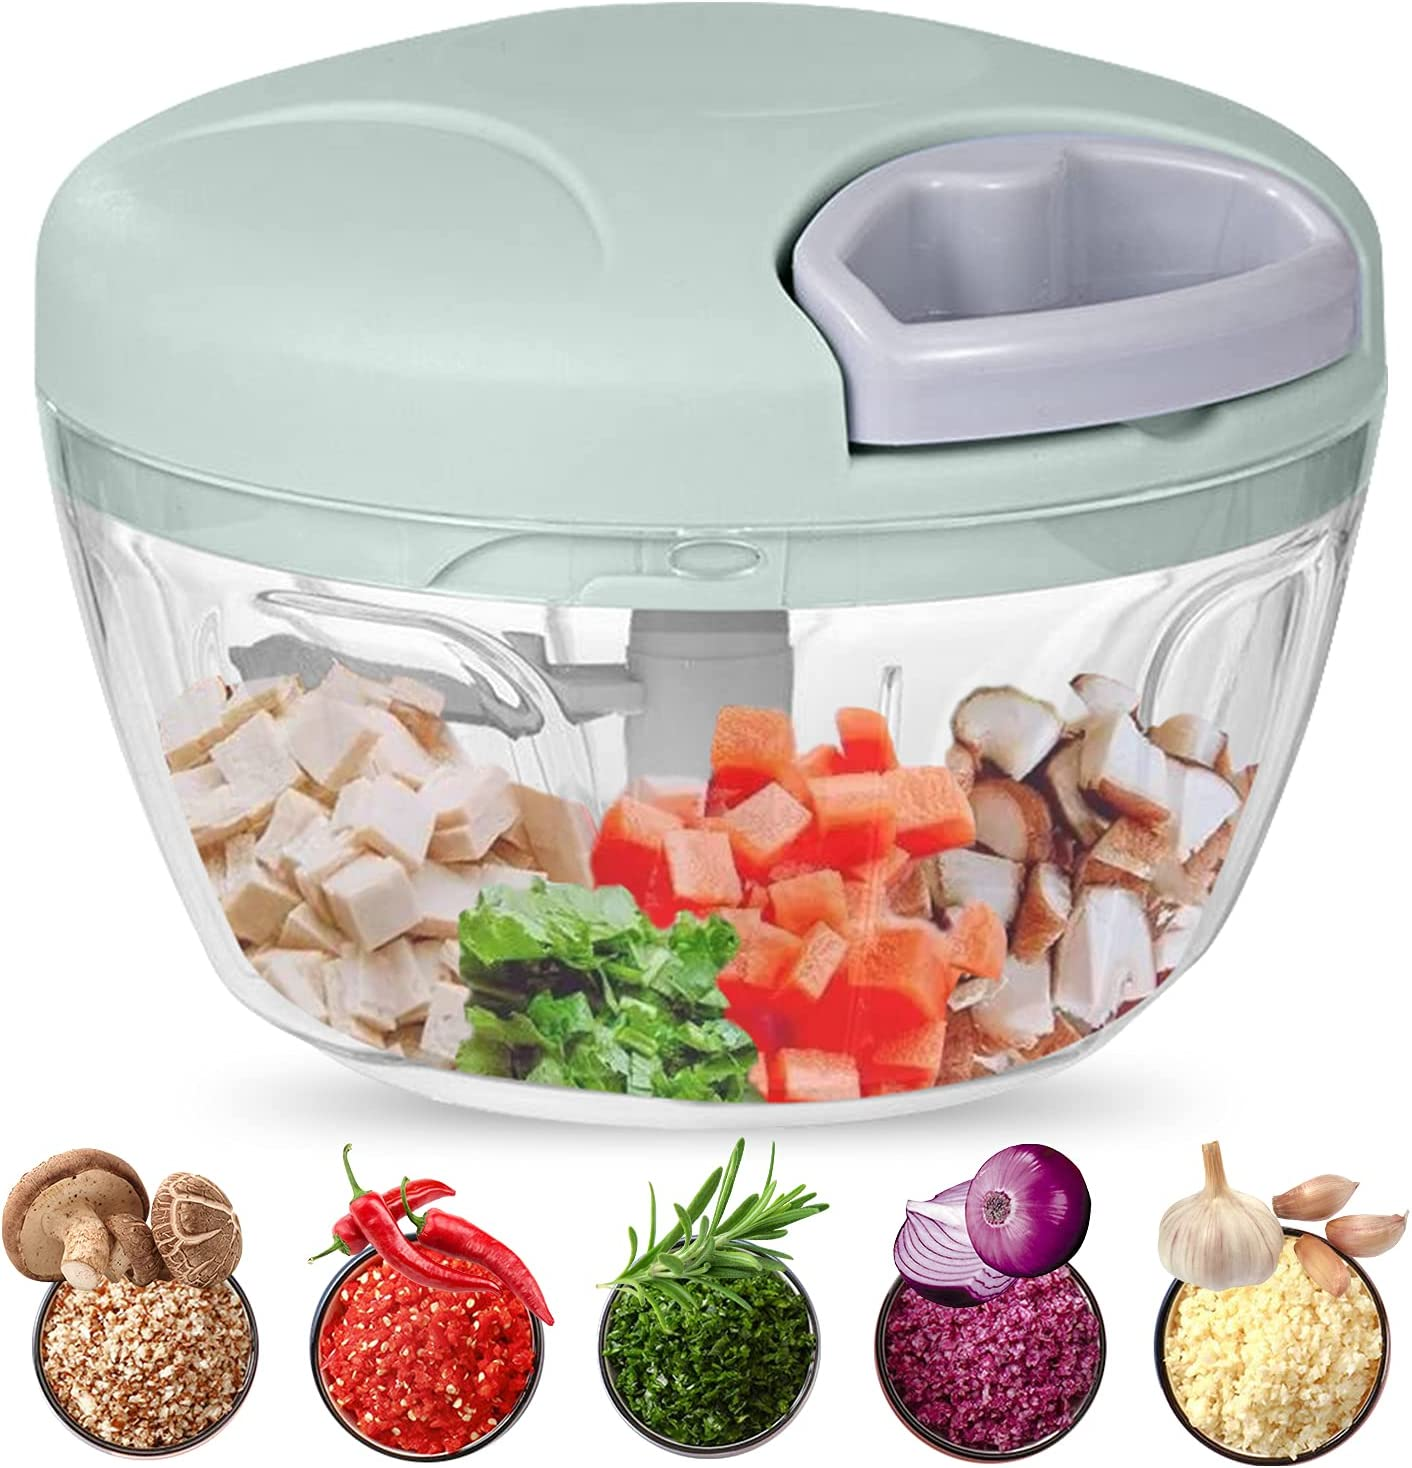 Food Chopper, 500ML Hand-Powered Portable Food Processor, Manual Vegetable Slicer and Dicer, Pull Chop Mechanism Cutter for Garlic, Onion, Vegetable, Salad, Pepper (Green)